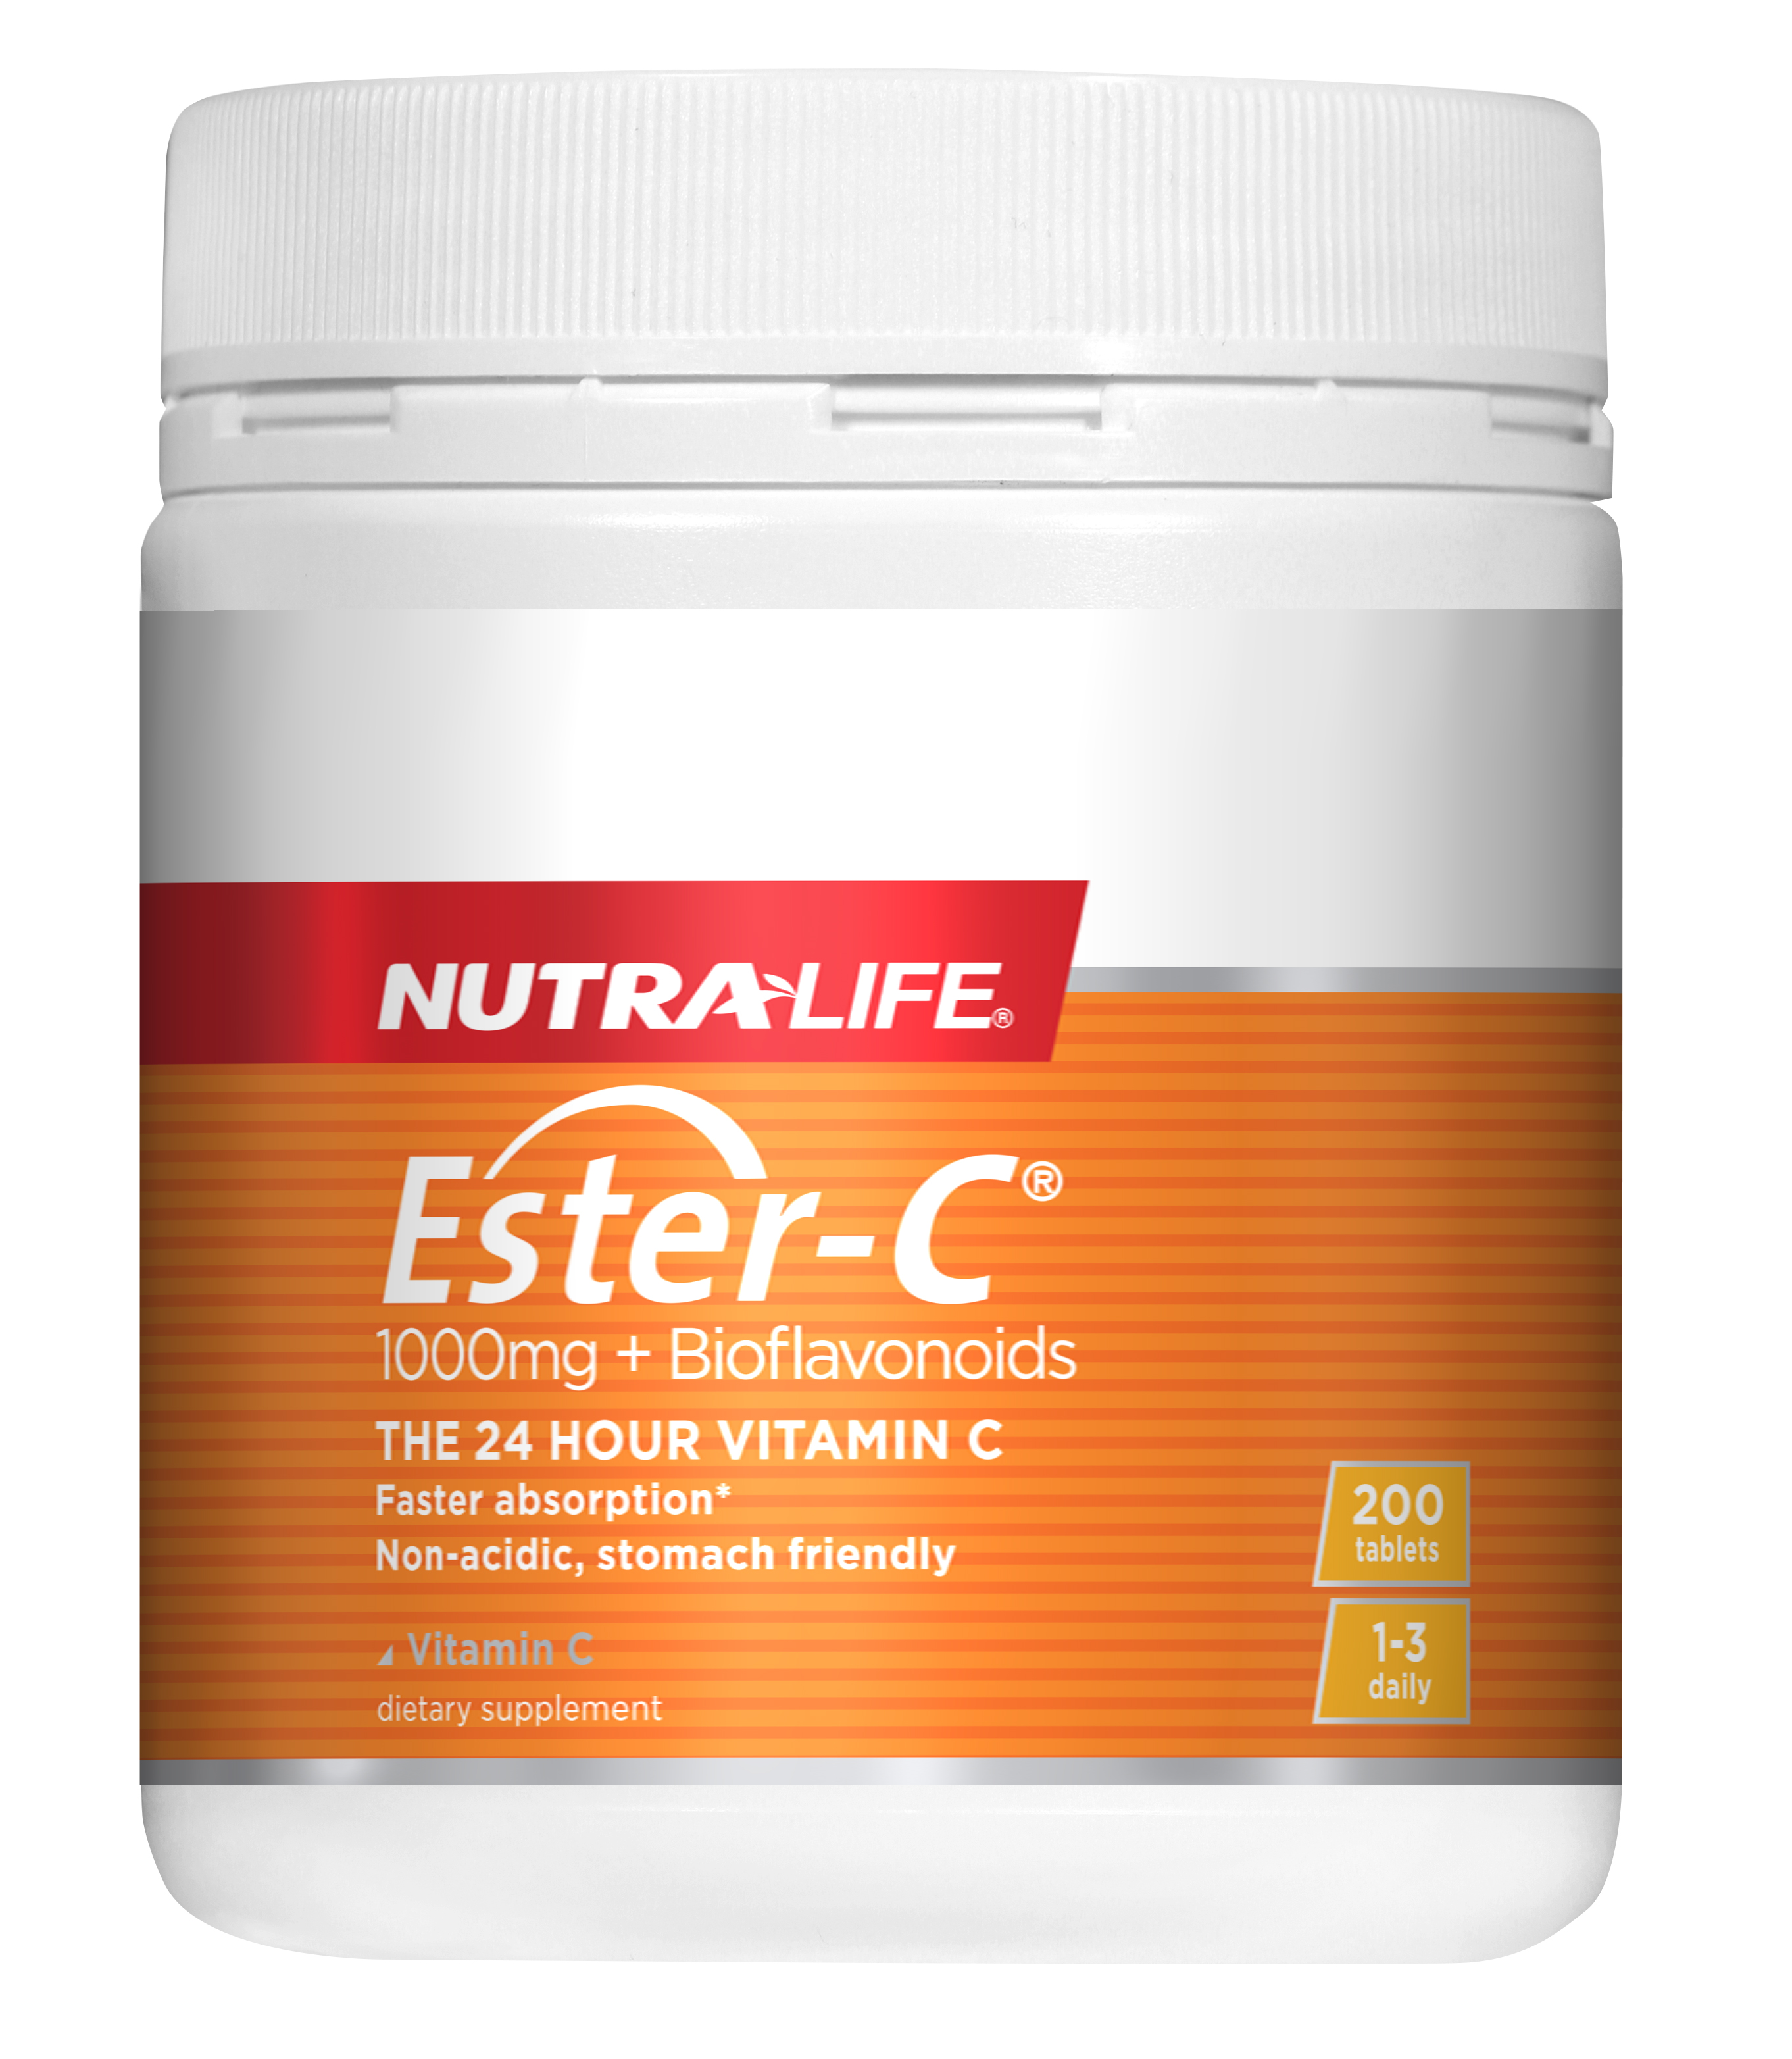 Nutra-life Ester C + Bioflavonoids 1000mg 200 Tablets